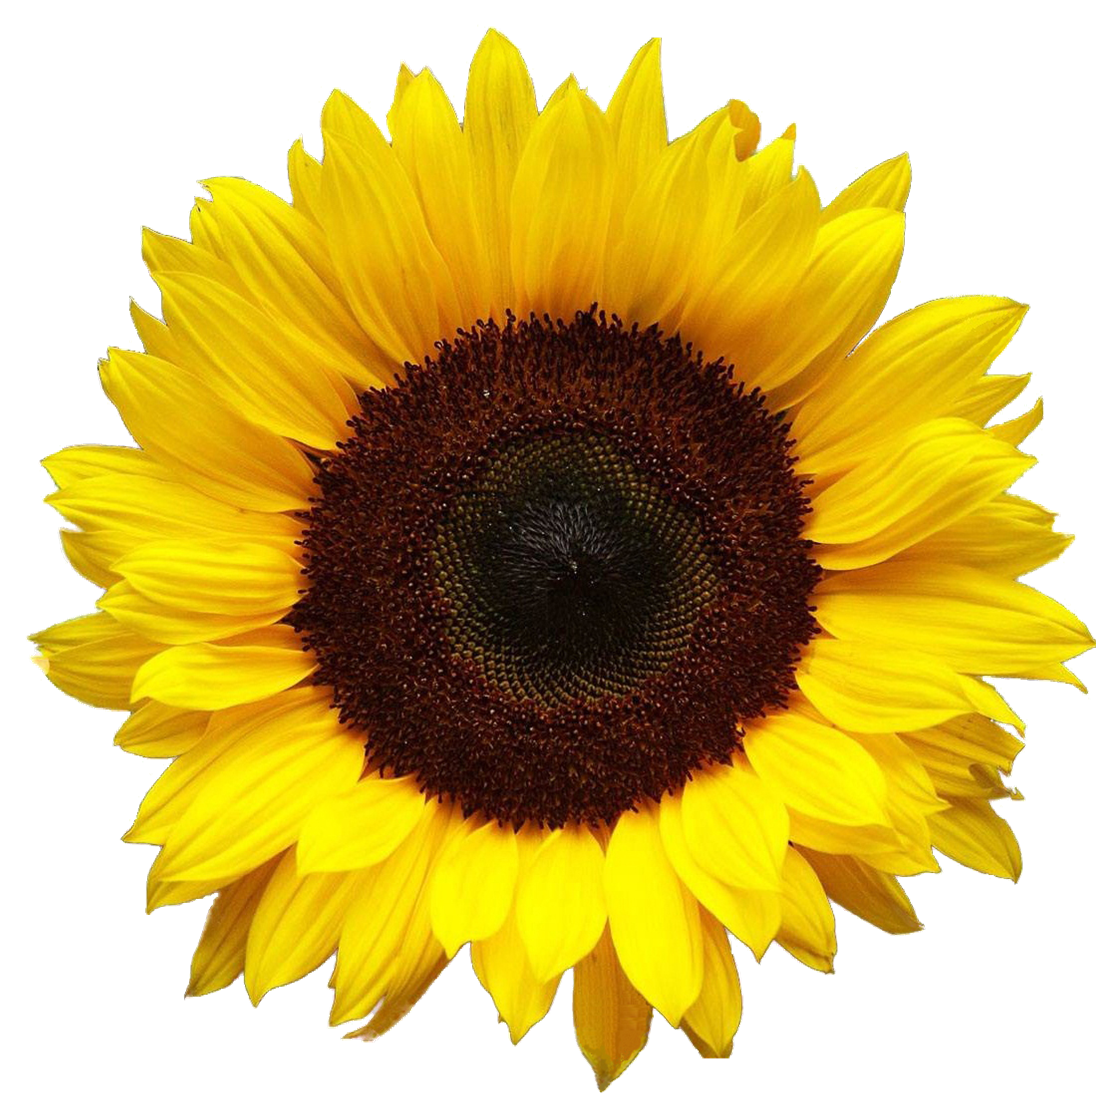 Sunflowers png root. Sun flowers asma with